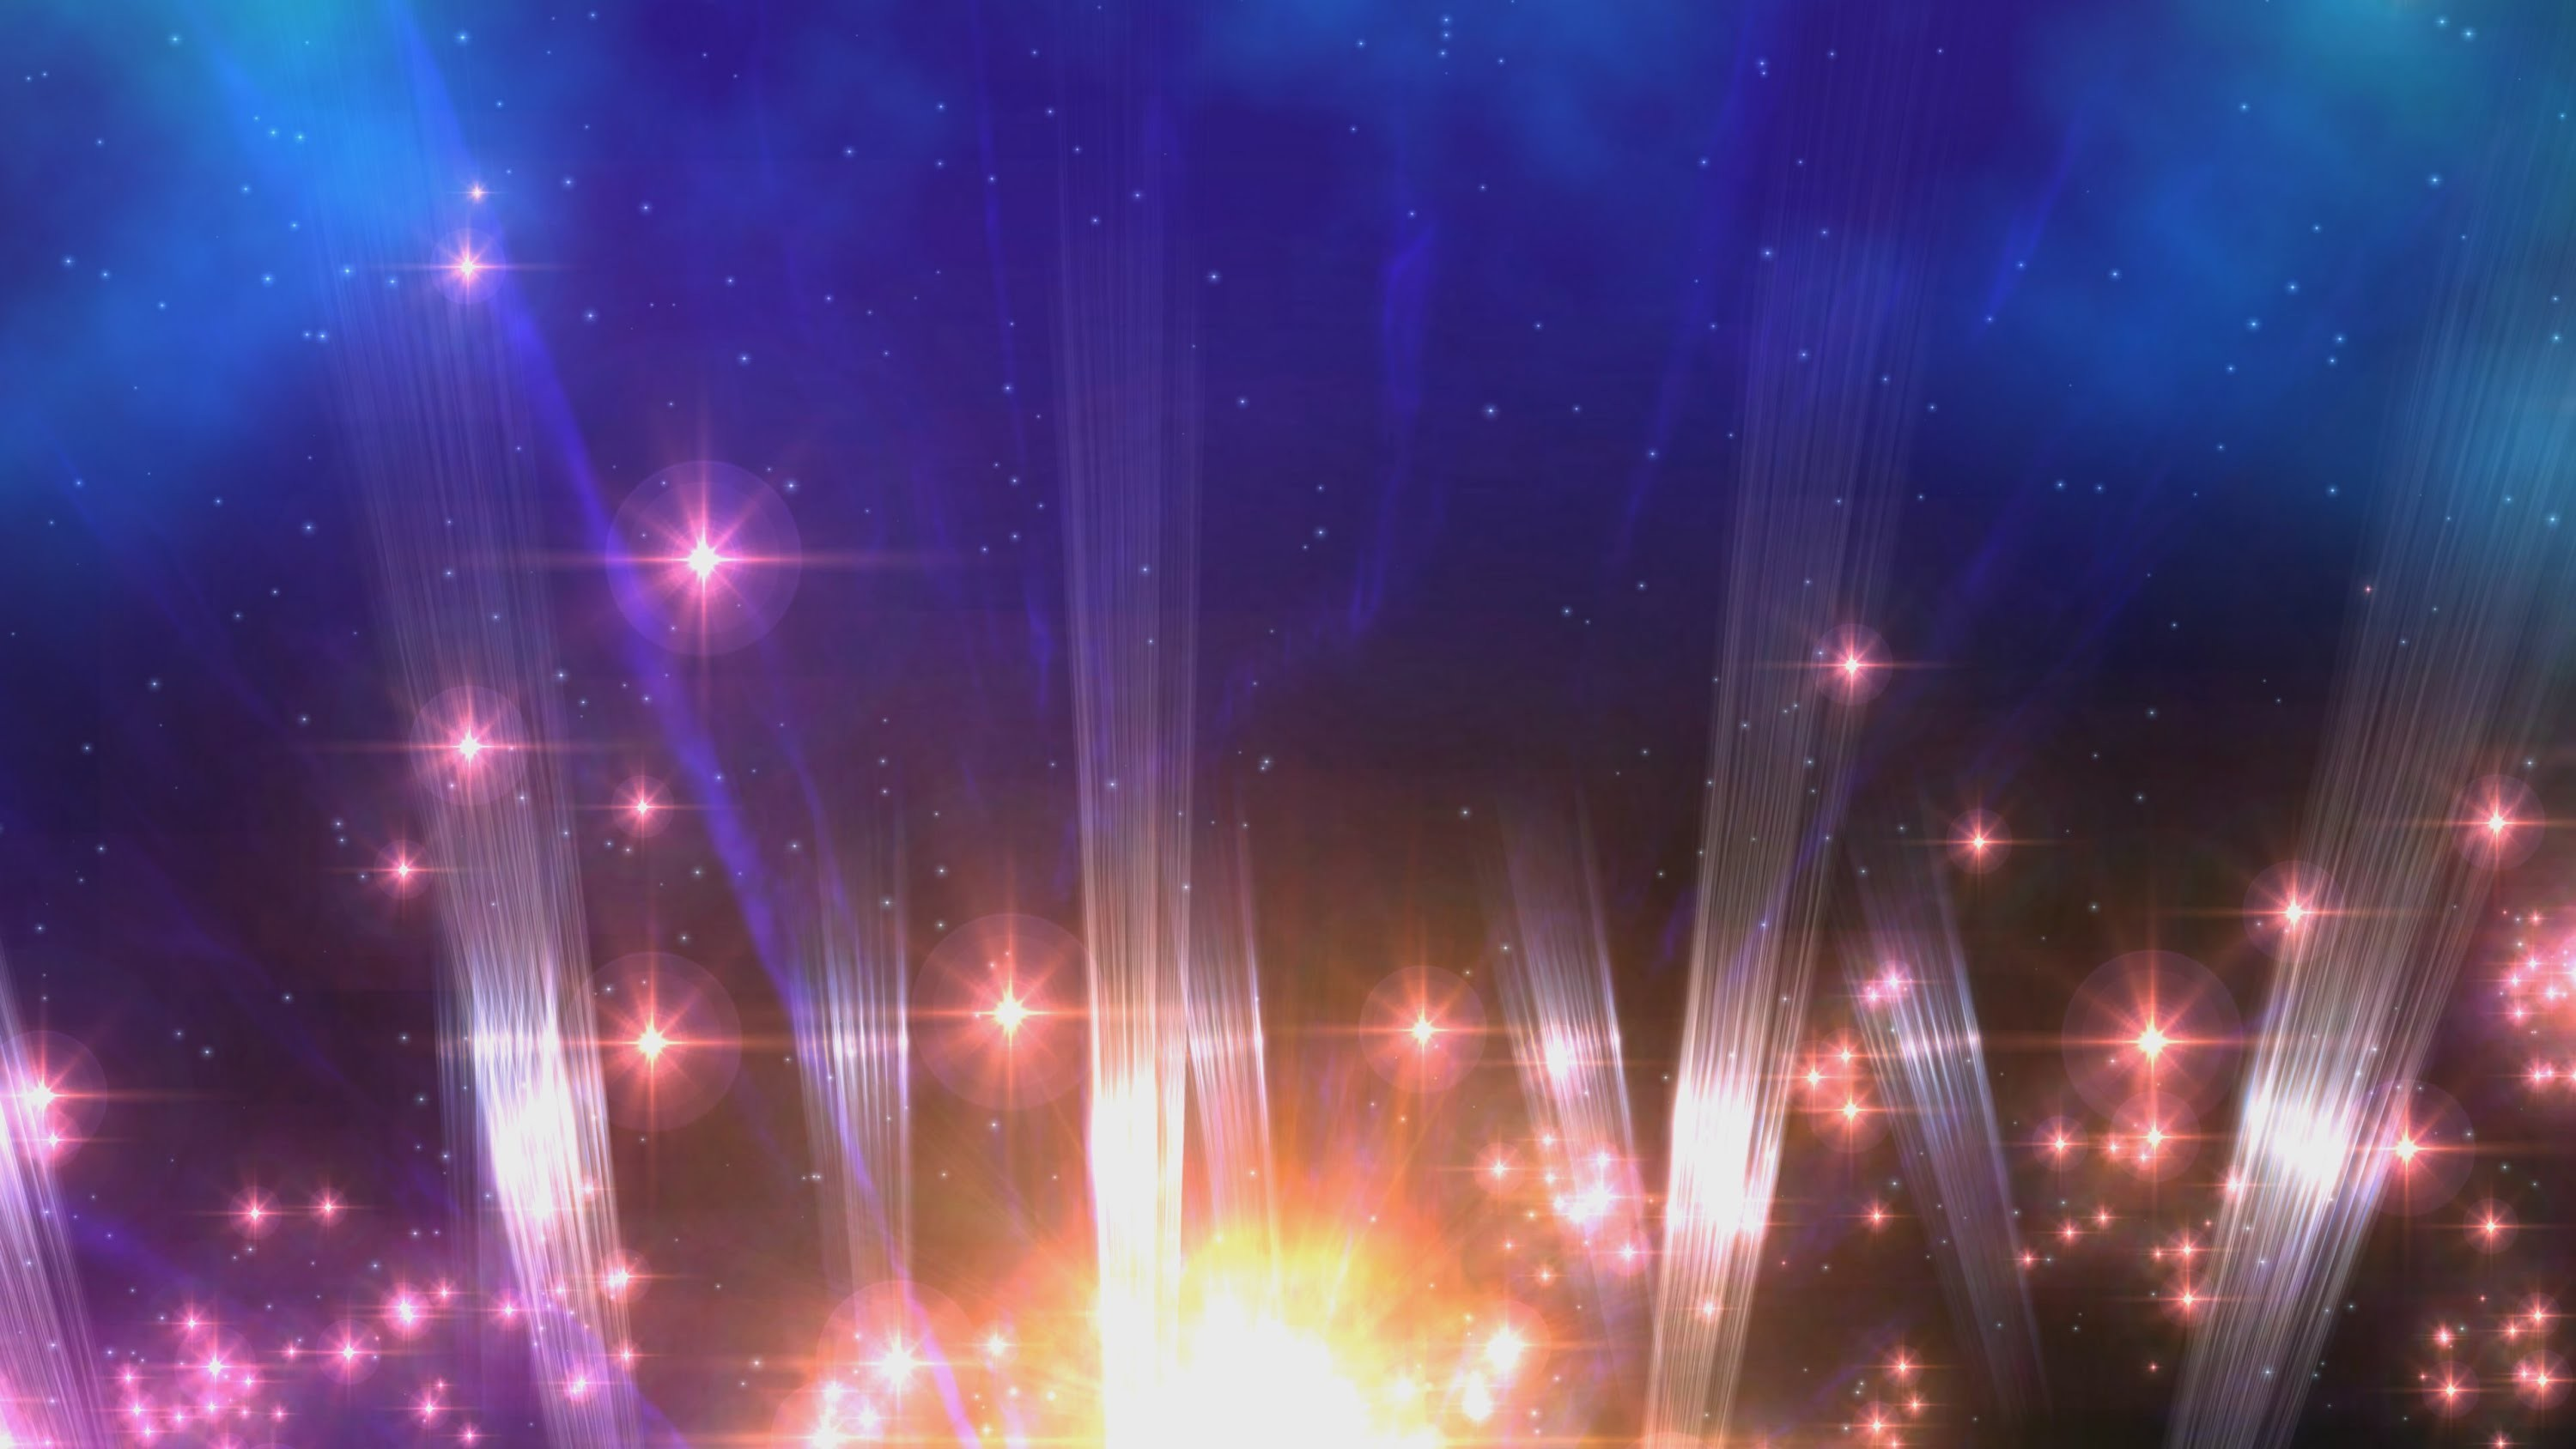 Cool Party Backgrounds 183 '�